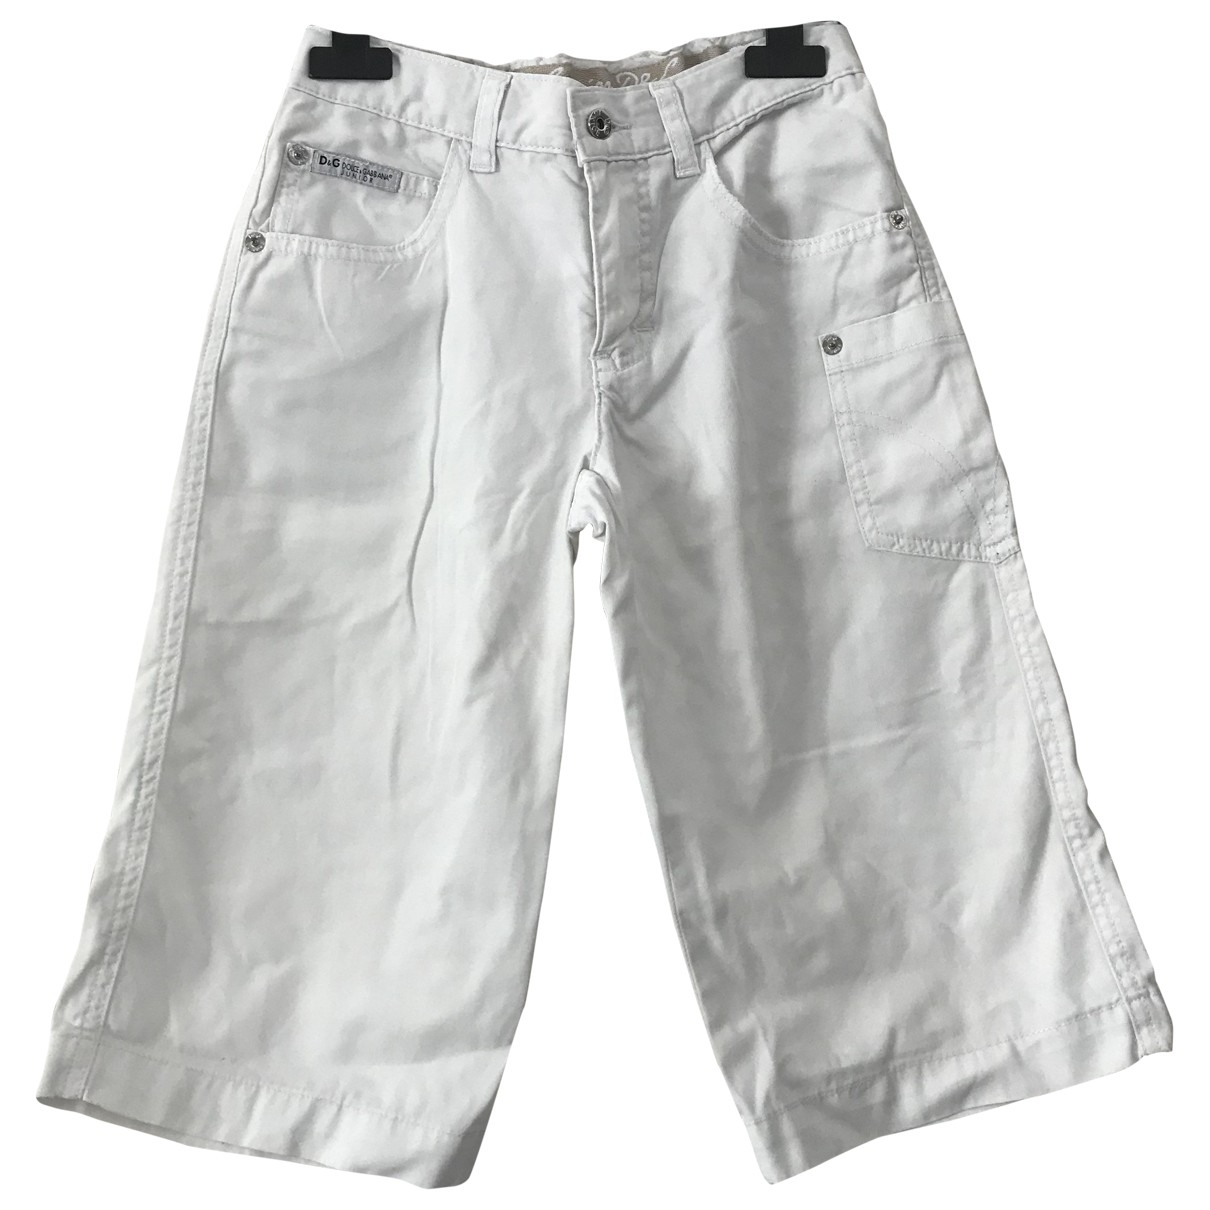 D&g \N White Cotton Shorts for Kids 6 years - up to 114cm FR